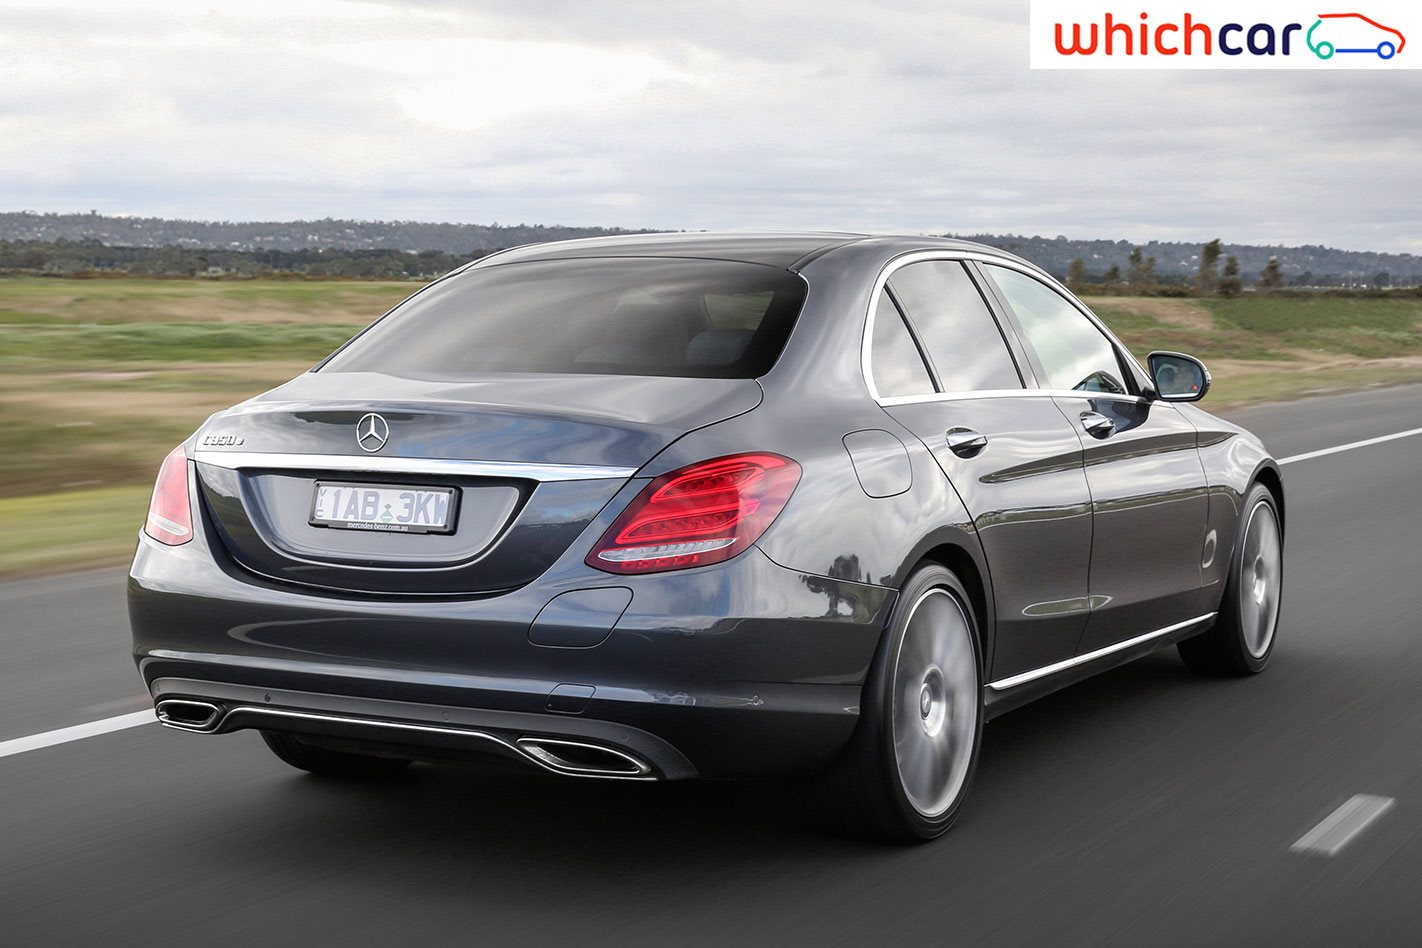 Mercedes Benz C Class Review Price and Features